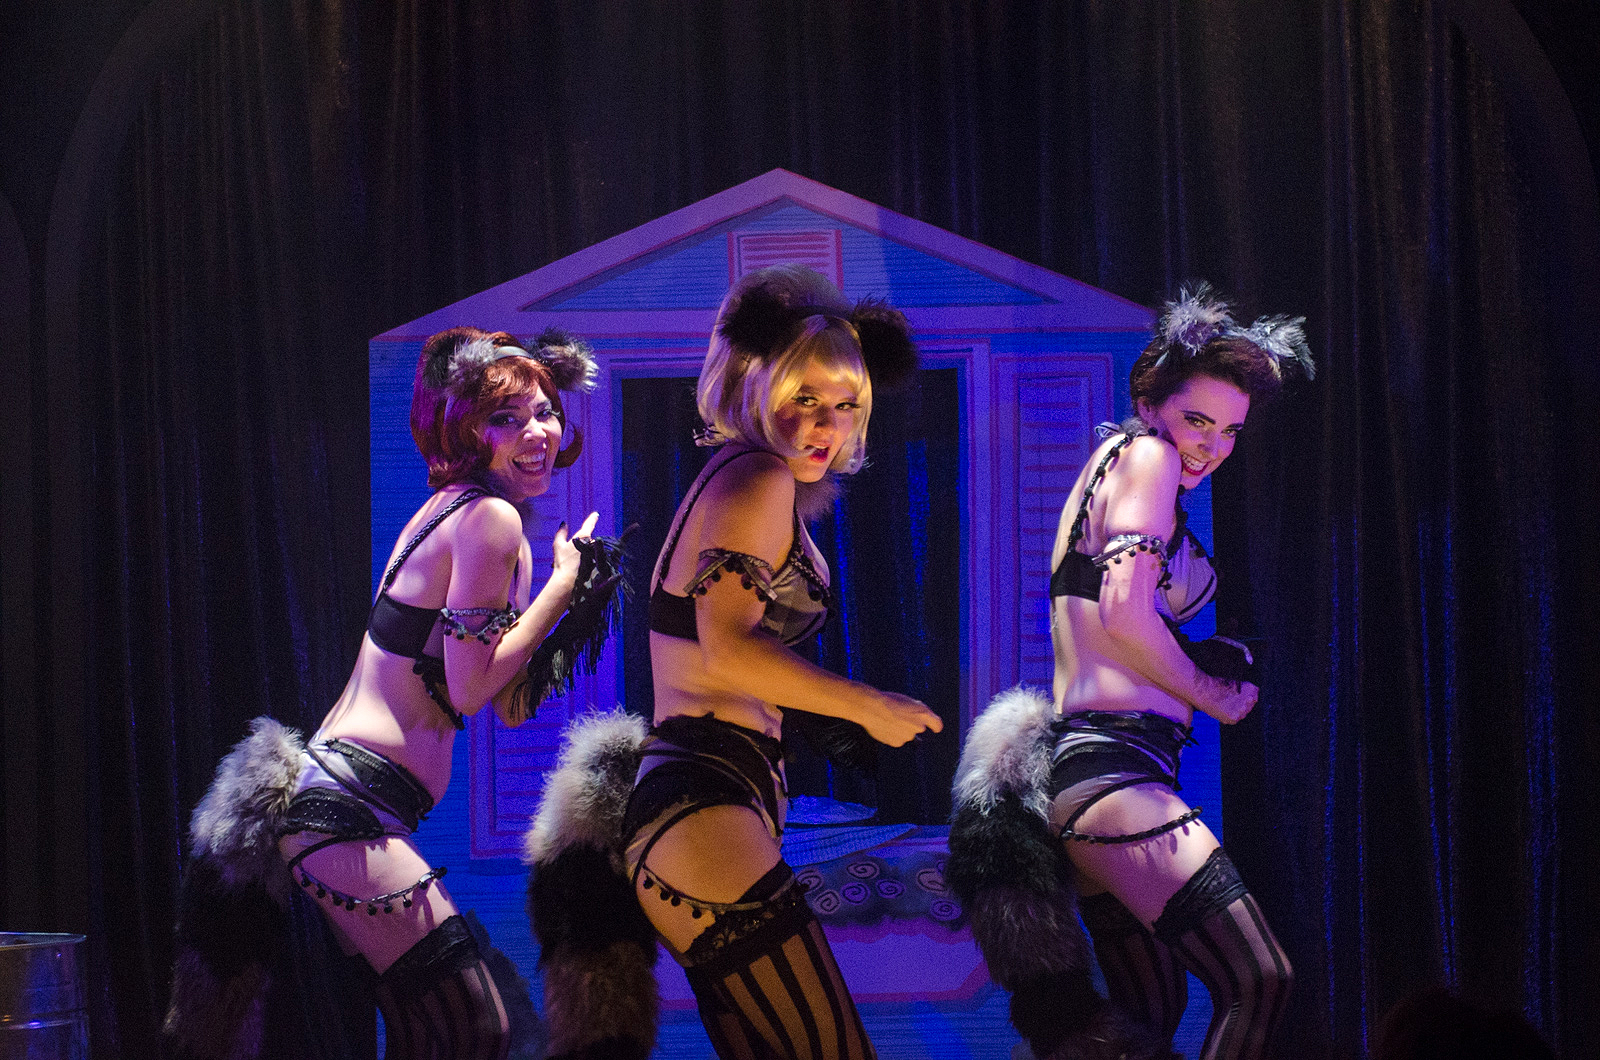 Stacey Yen, Emily Walton and Tansy in Eager to Lose at Ars Nova